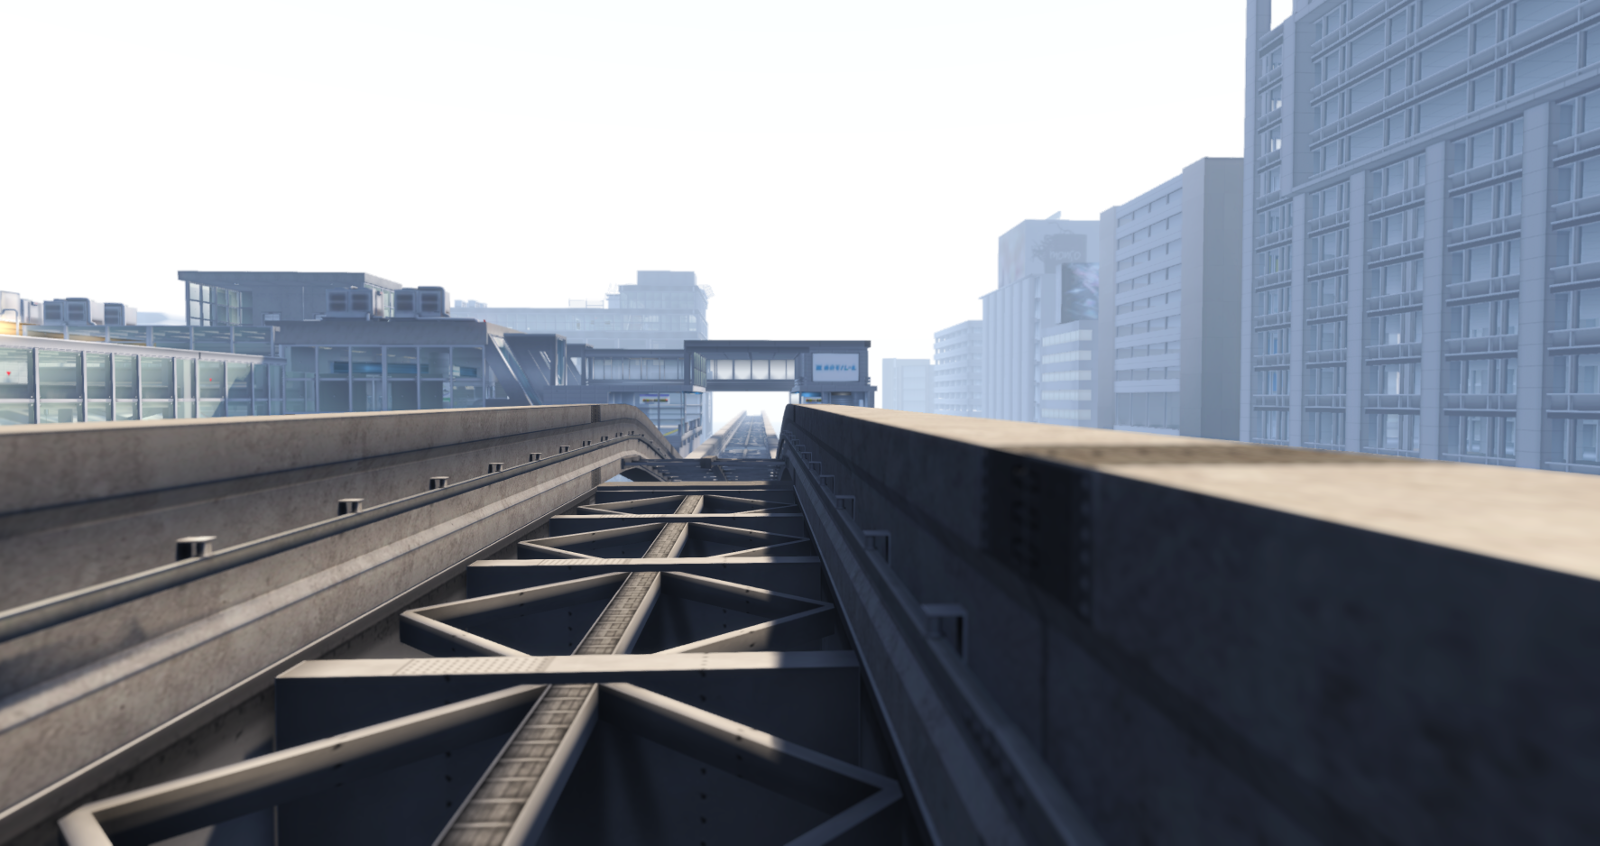 The elevated railway in Mopire City